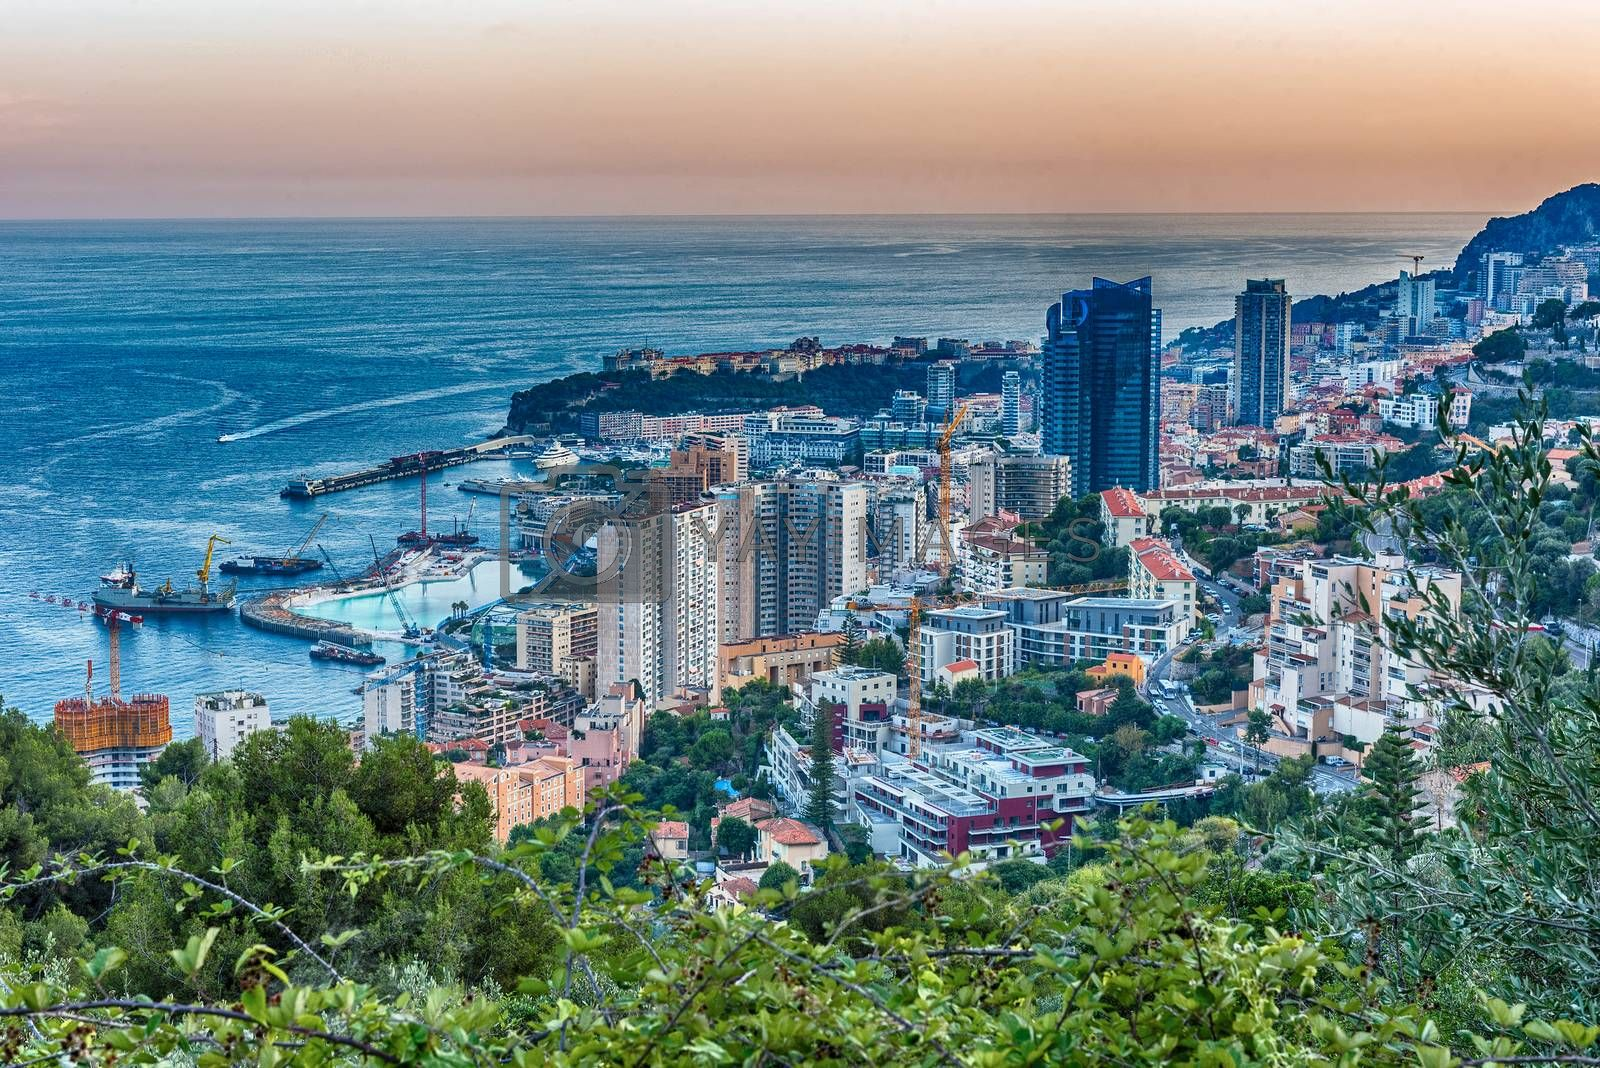 Panoramic view of Monaco at sunset from the Grande Corniche road, iconic landmark in Cote d'Azur, French Riviera